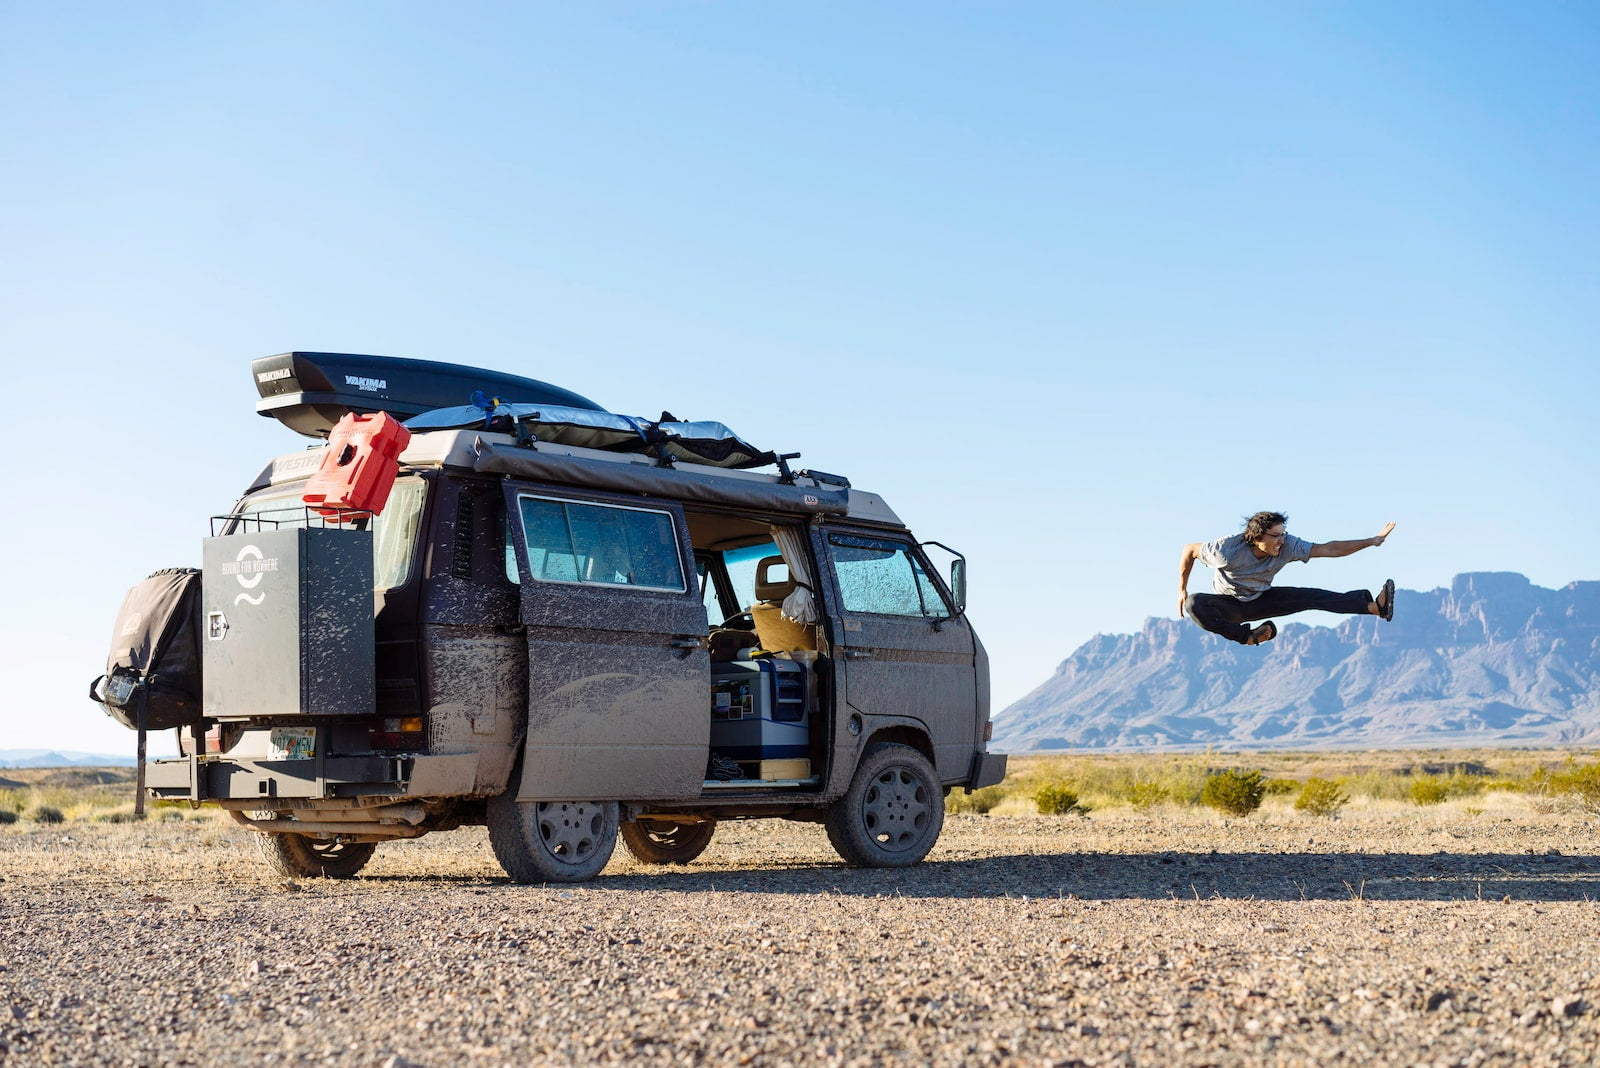 Owen from Bound for Nowhere caught in midair next to their VW Vanagon rig.